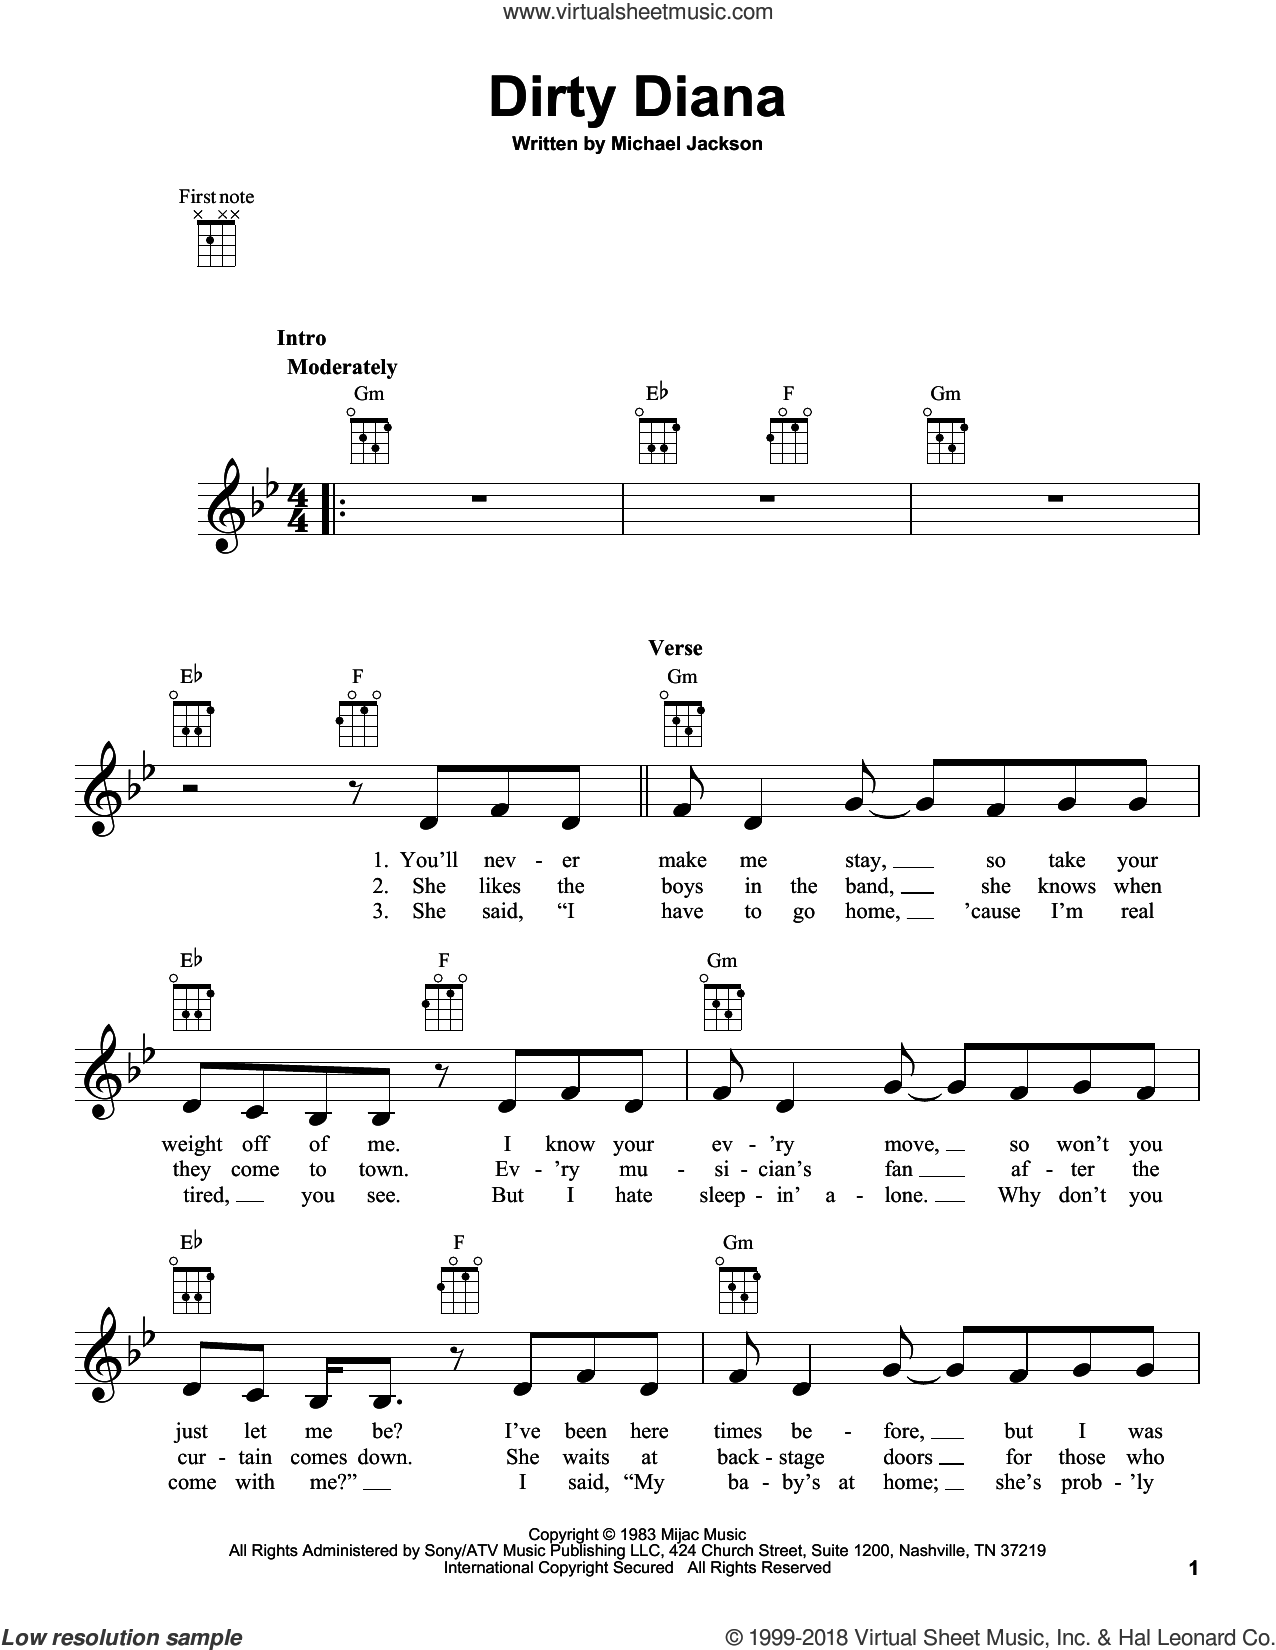 Dirty Diana sheet music for ukulele by Michael Jackson, intermediate skill level